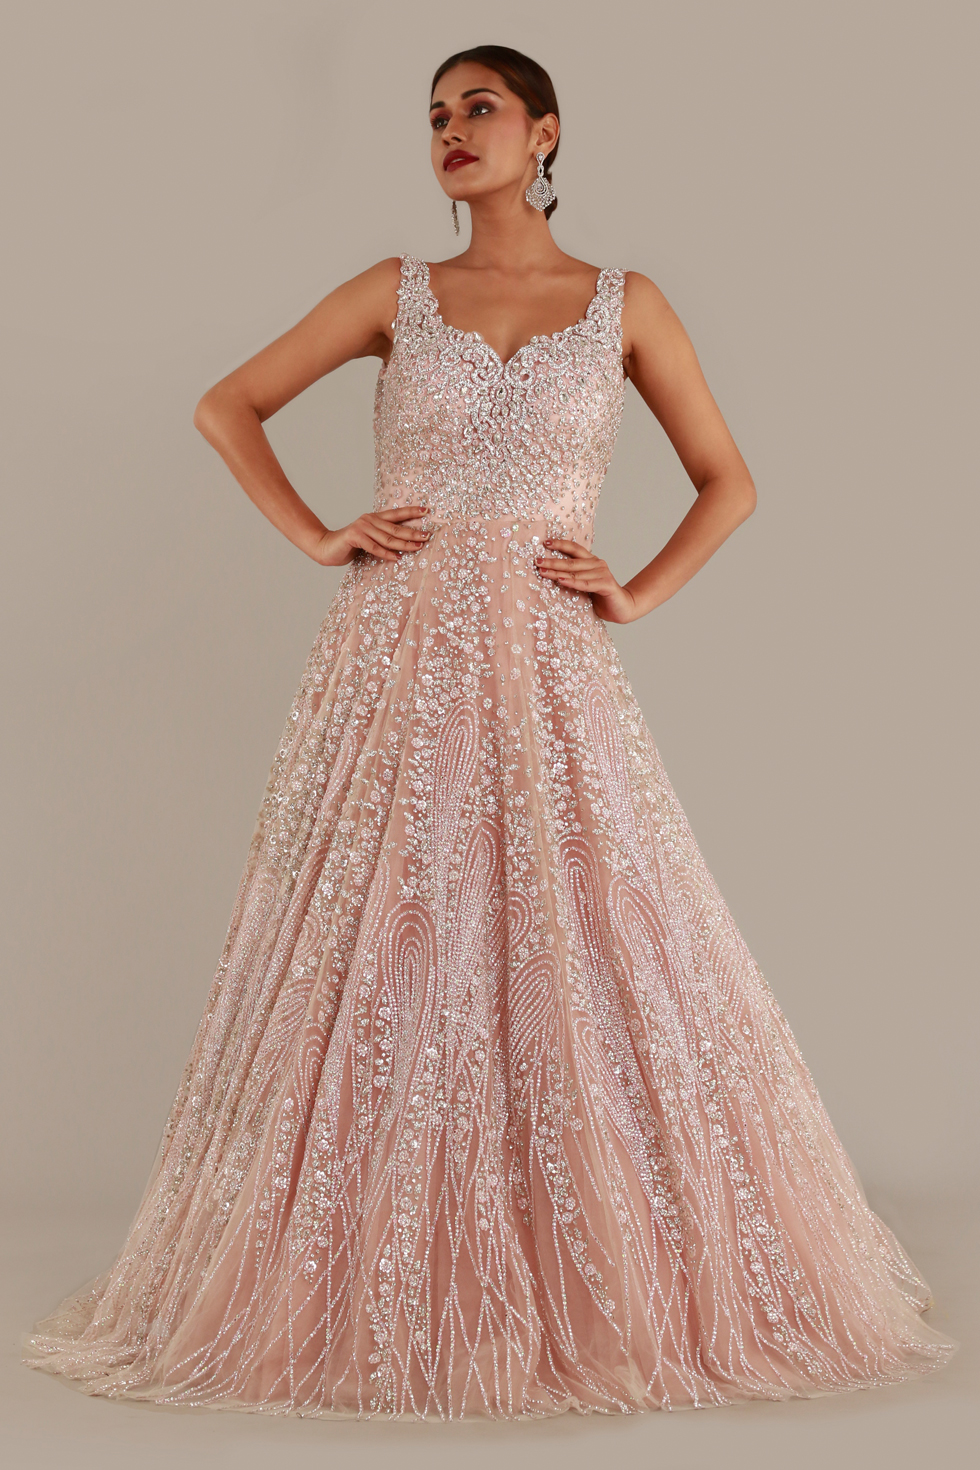 Blush  pink shimmery tulle gown with cut work neckline, silver embroidery and stone embellishments